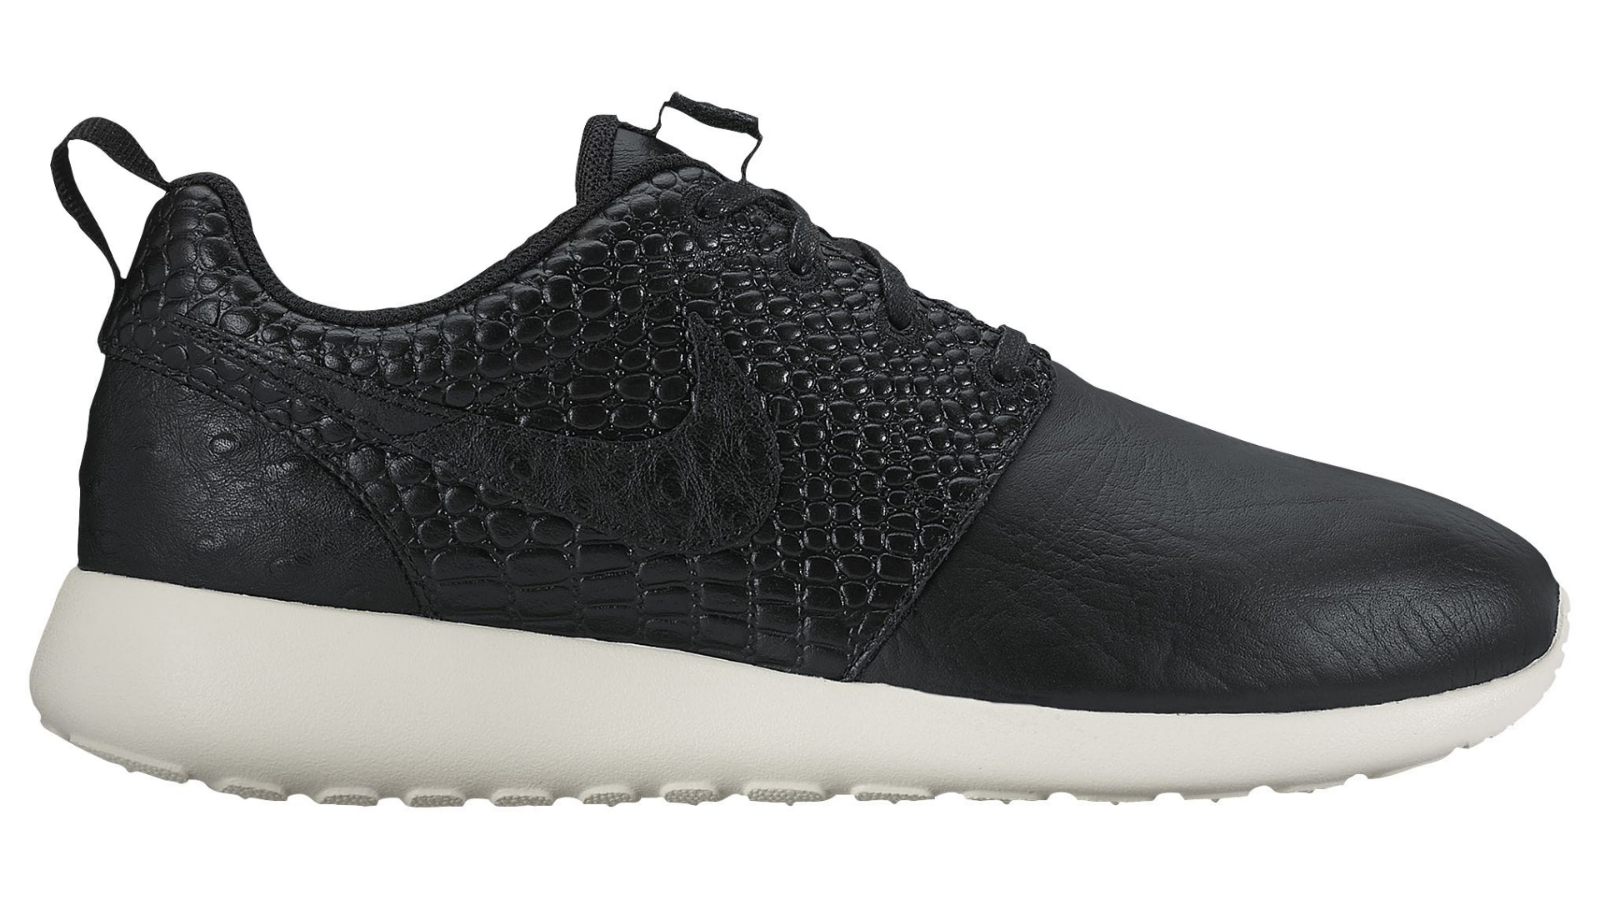 NIKE WMNS ROSHE ONE LX BLACK LEATHER IVORY Surprise Pack 881202-001 Damenschuhe 7.5